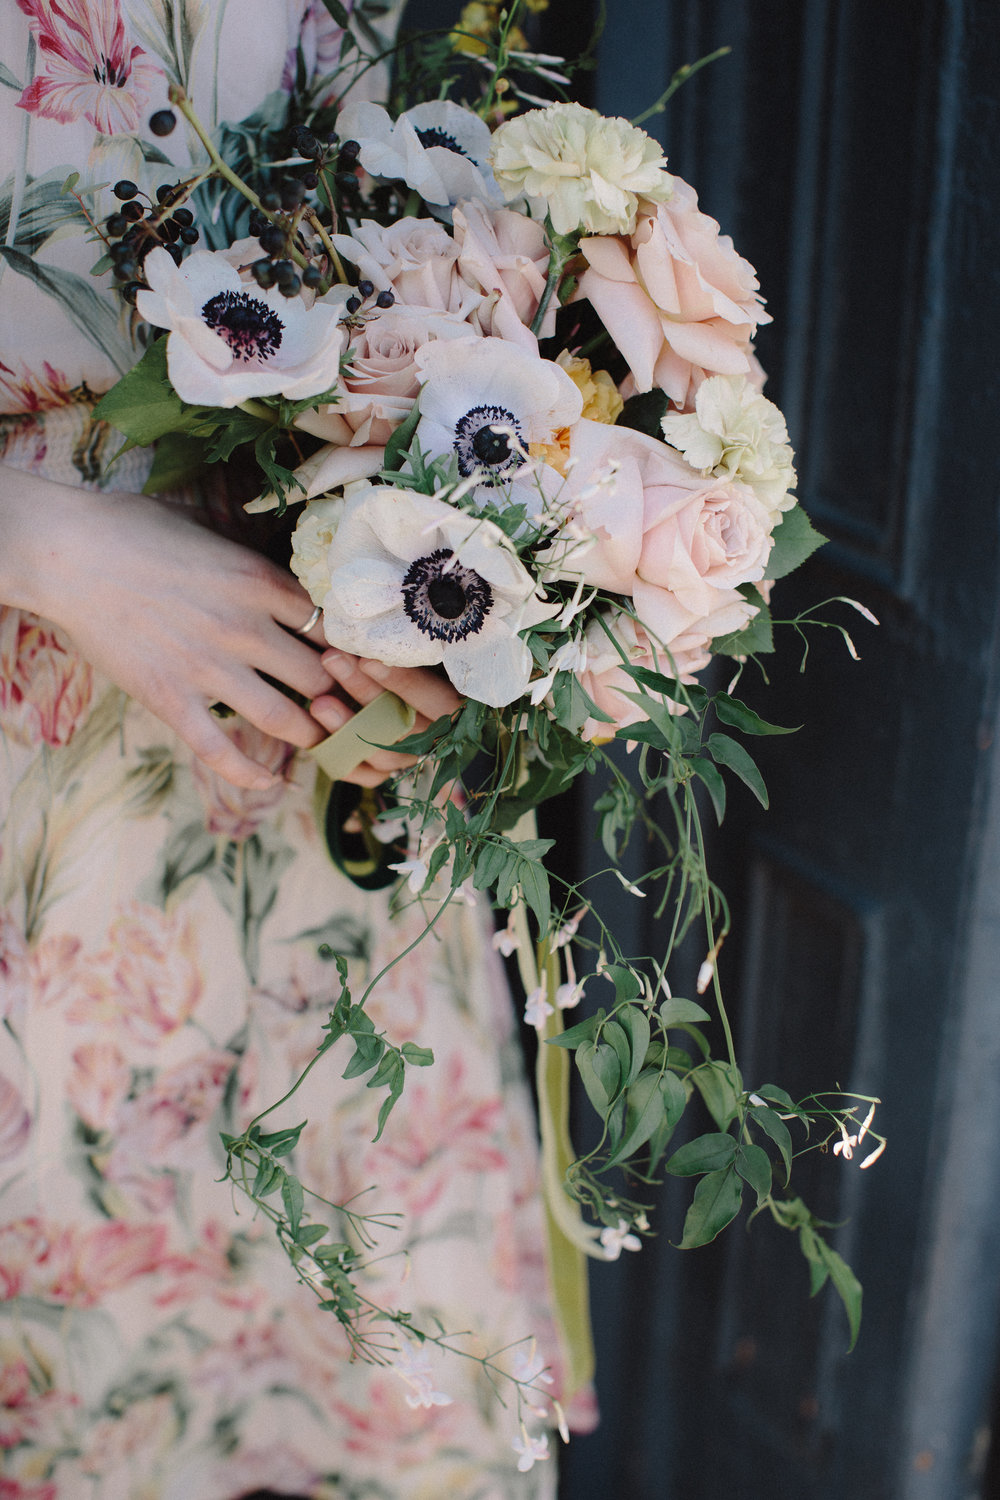 Spring wedding flowers by Nectar & Root | Wedding floral design services in Burlington, Vermont (VT) | Blush and yellow bridal bouquet of anemones, garden roses, jasmine